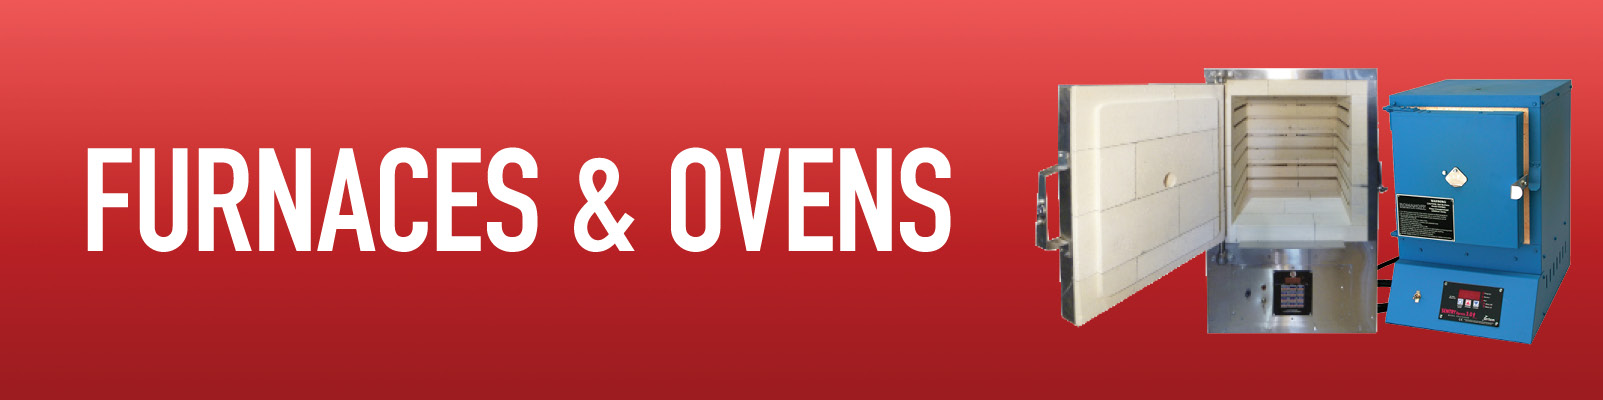 Furnaces / Ovens